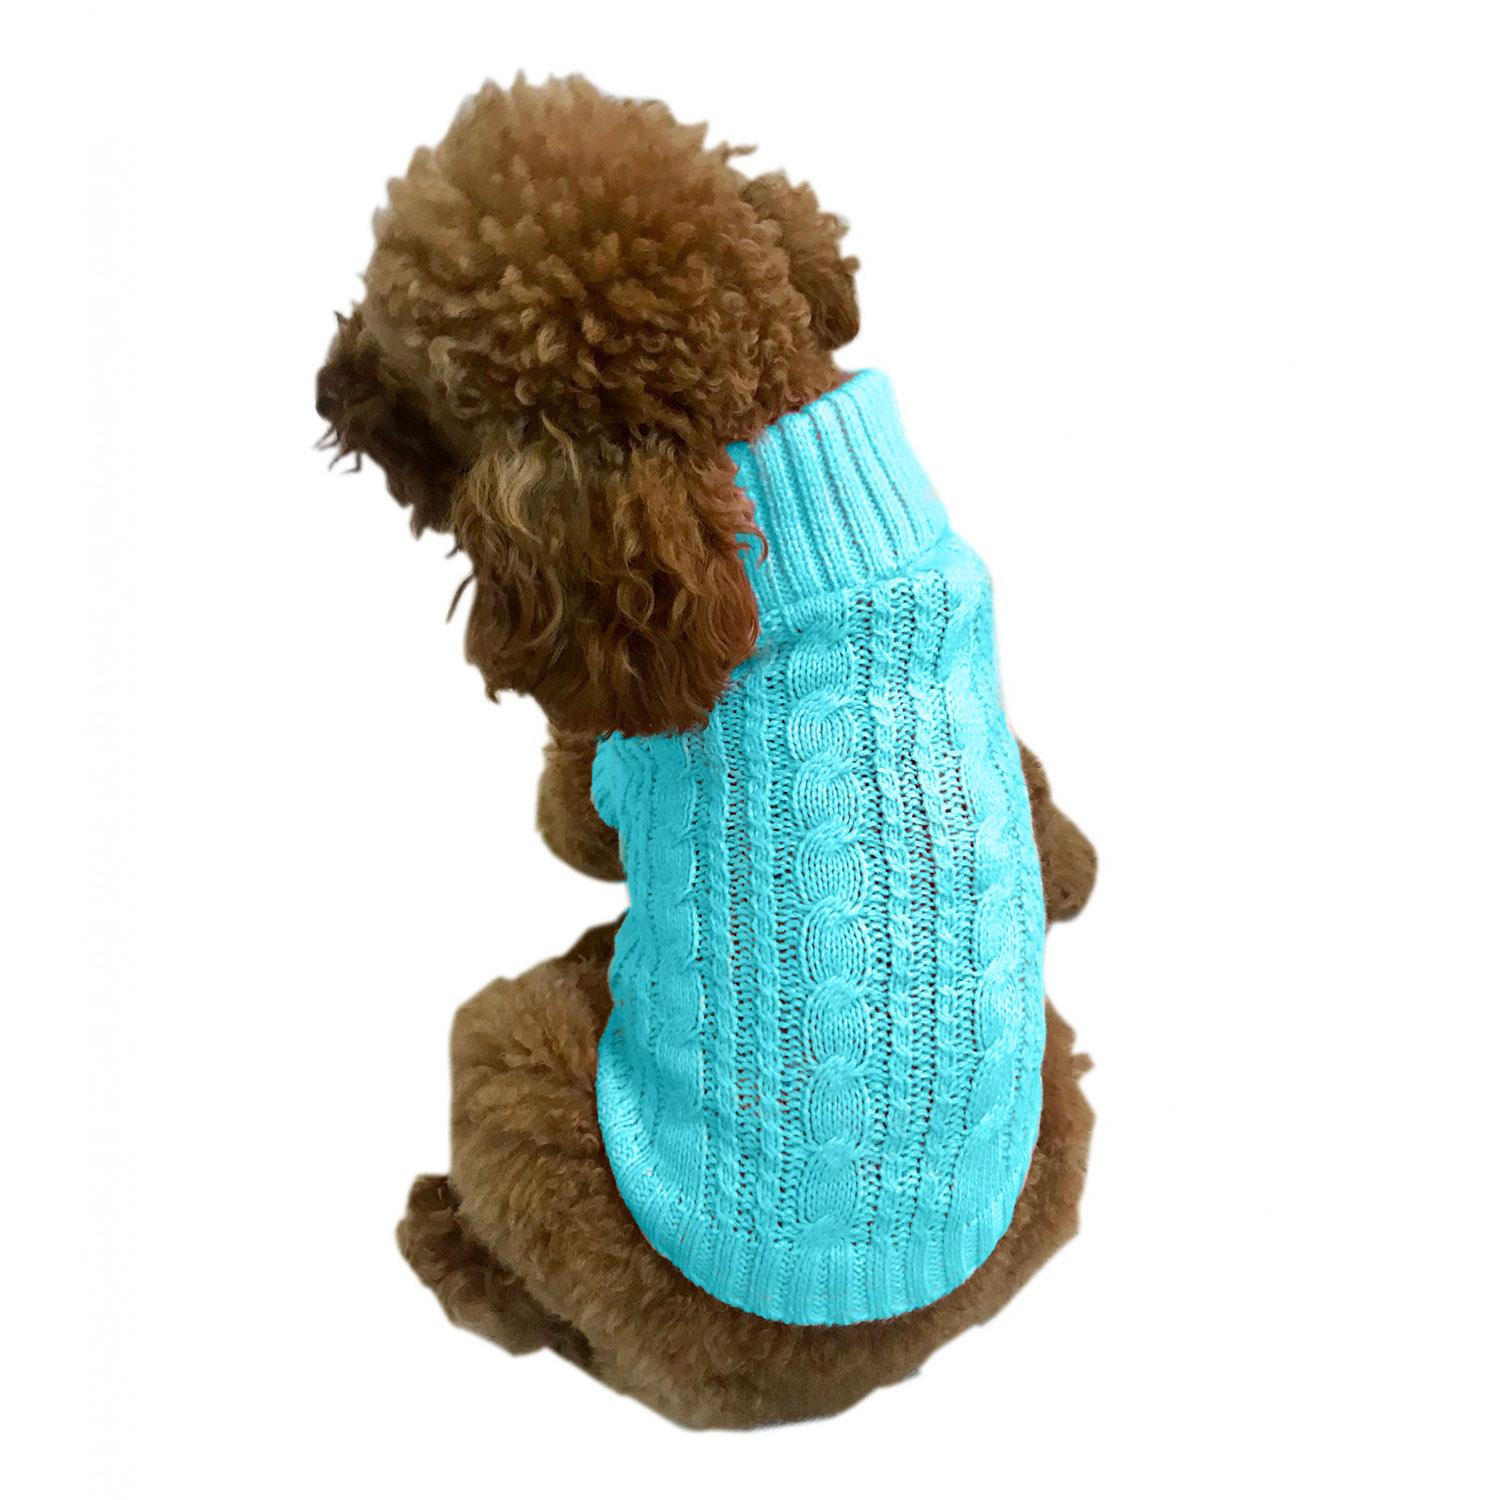 Scottish Cable Knit Dog Sweater by The Dog Squad - Light Turquoise